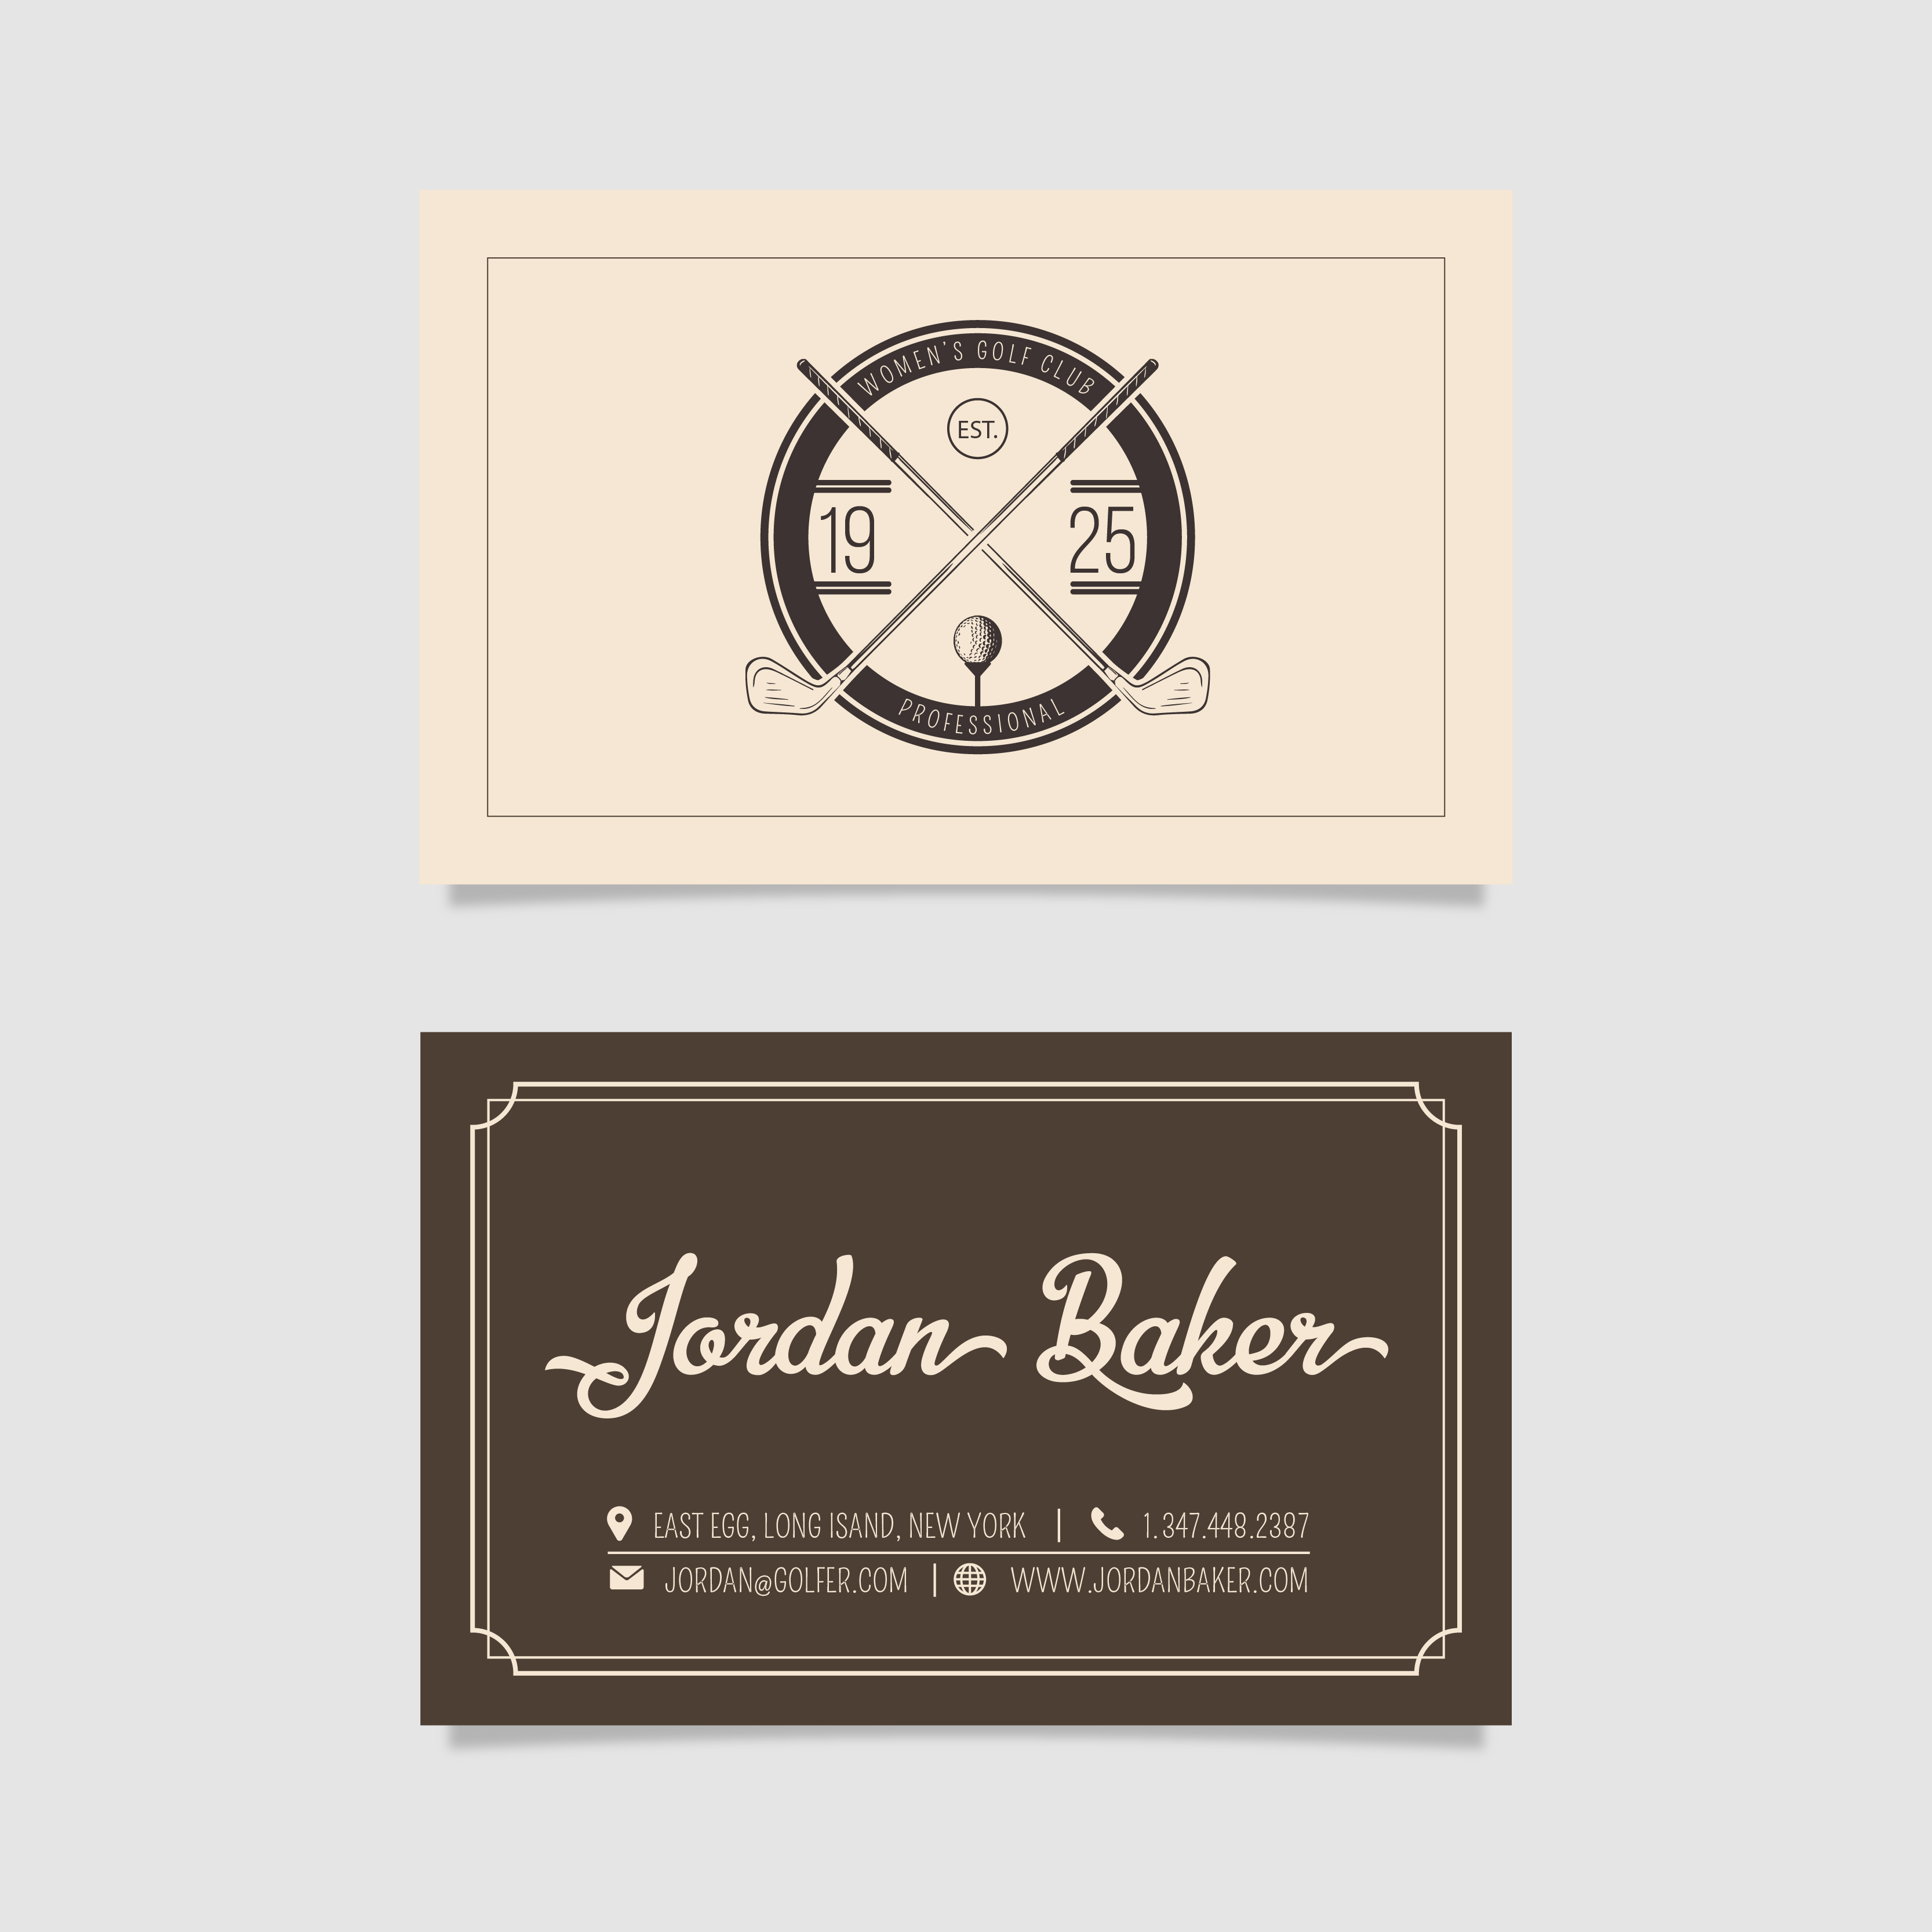 Character Design Business Card : What if the characters from great gatsby by f scott